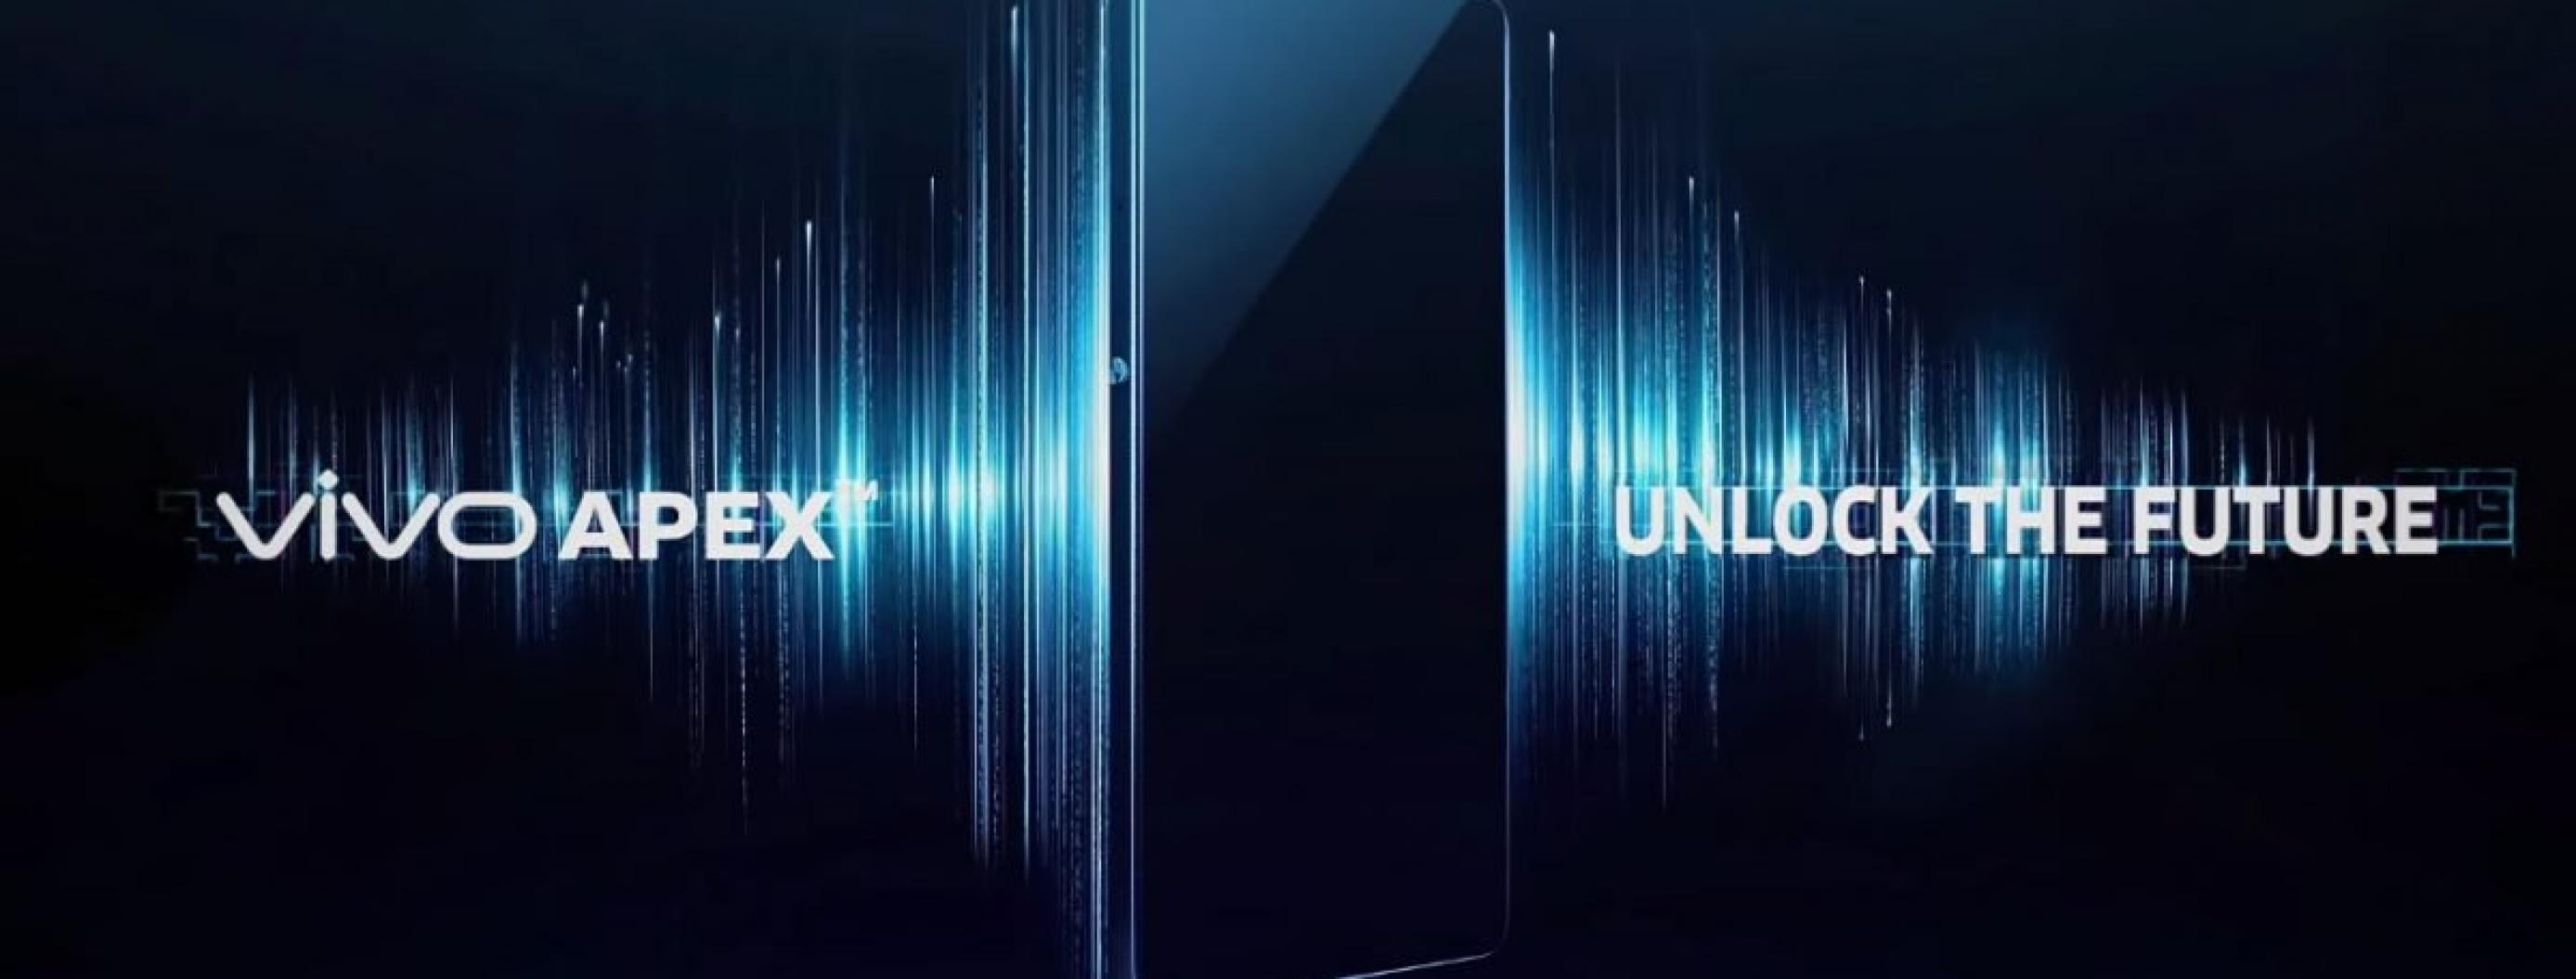 Could Vivo Release the First All-Screen Phone By June?